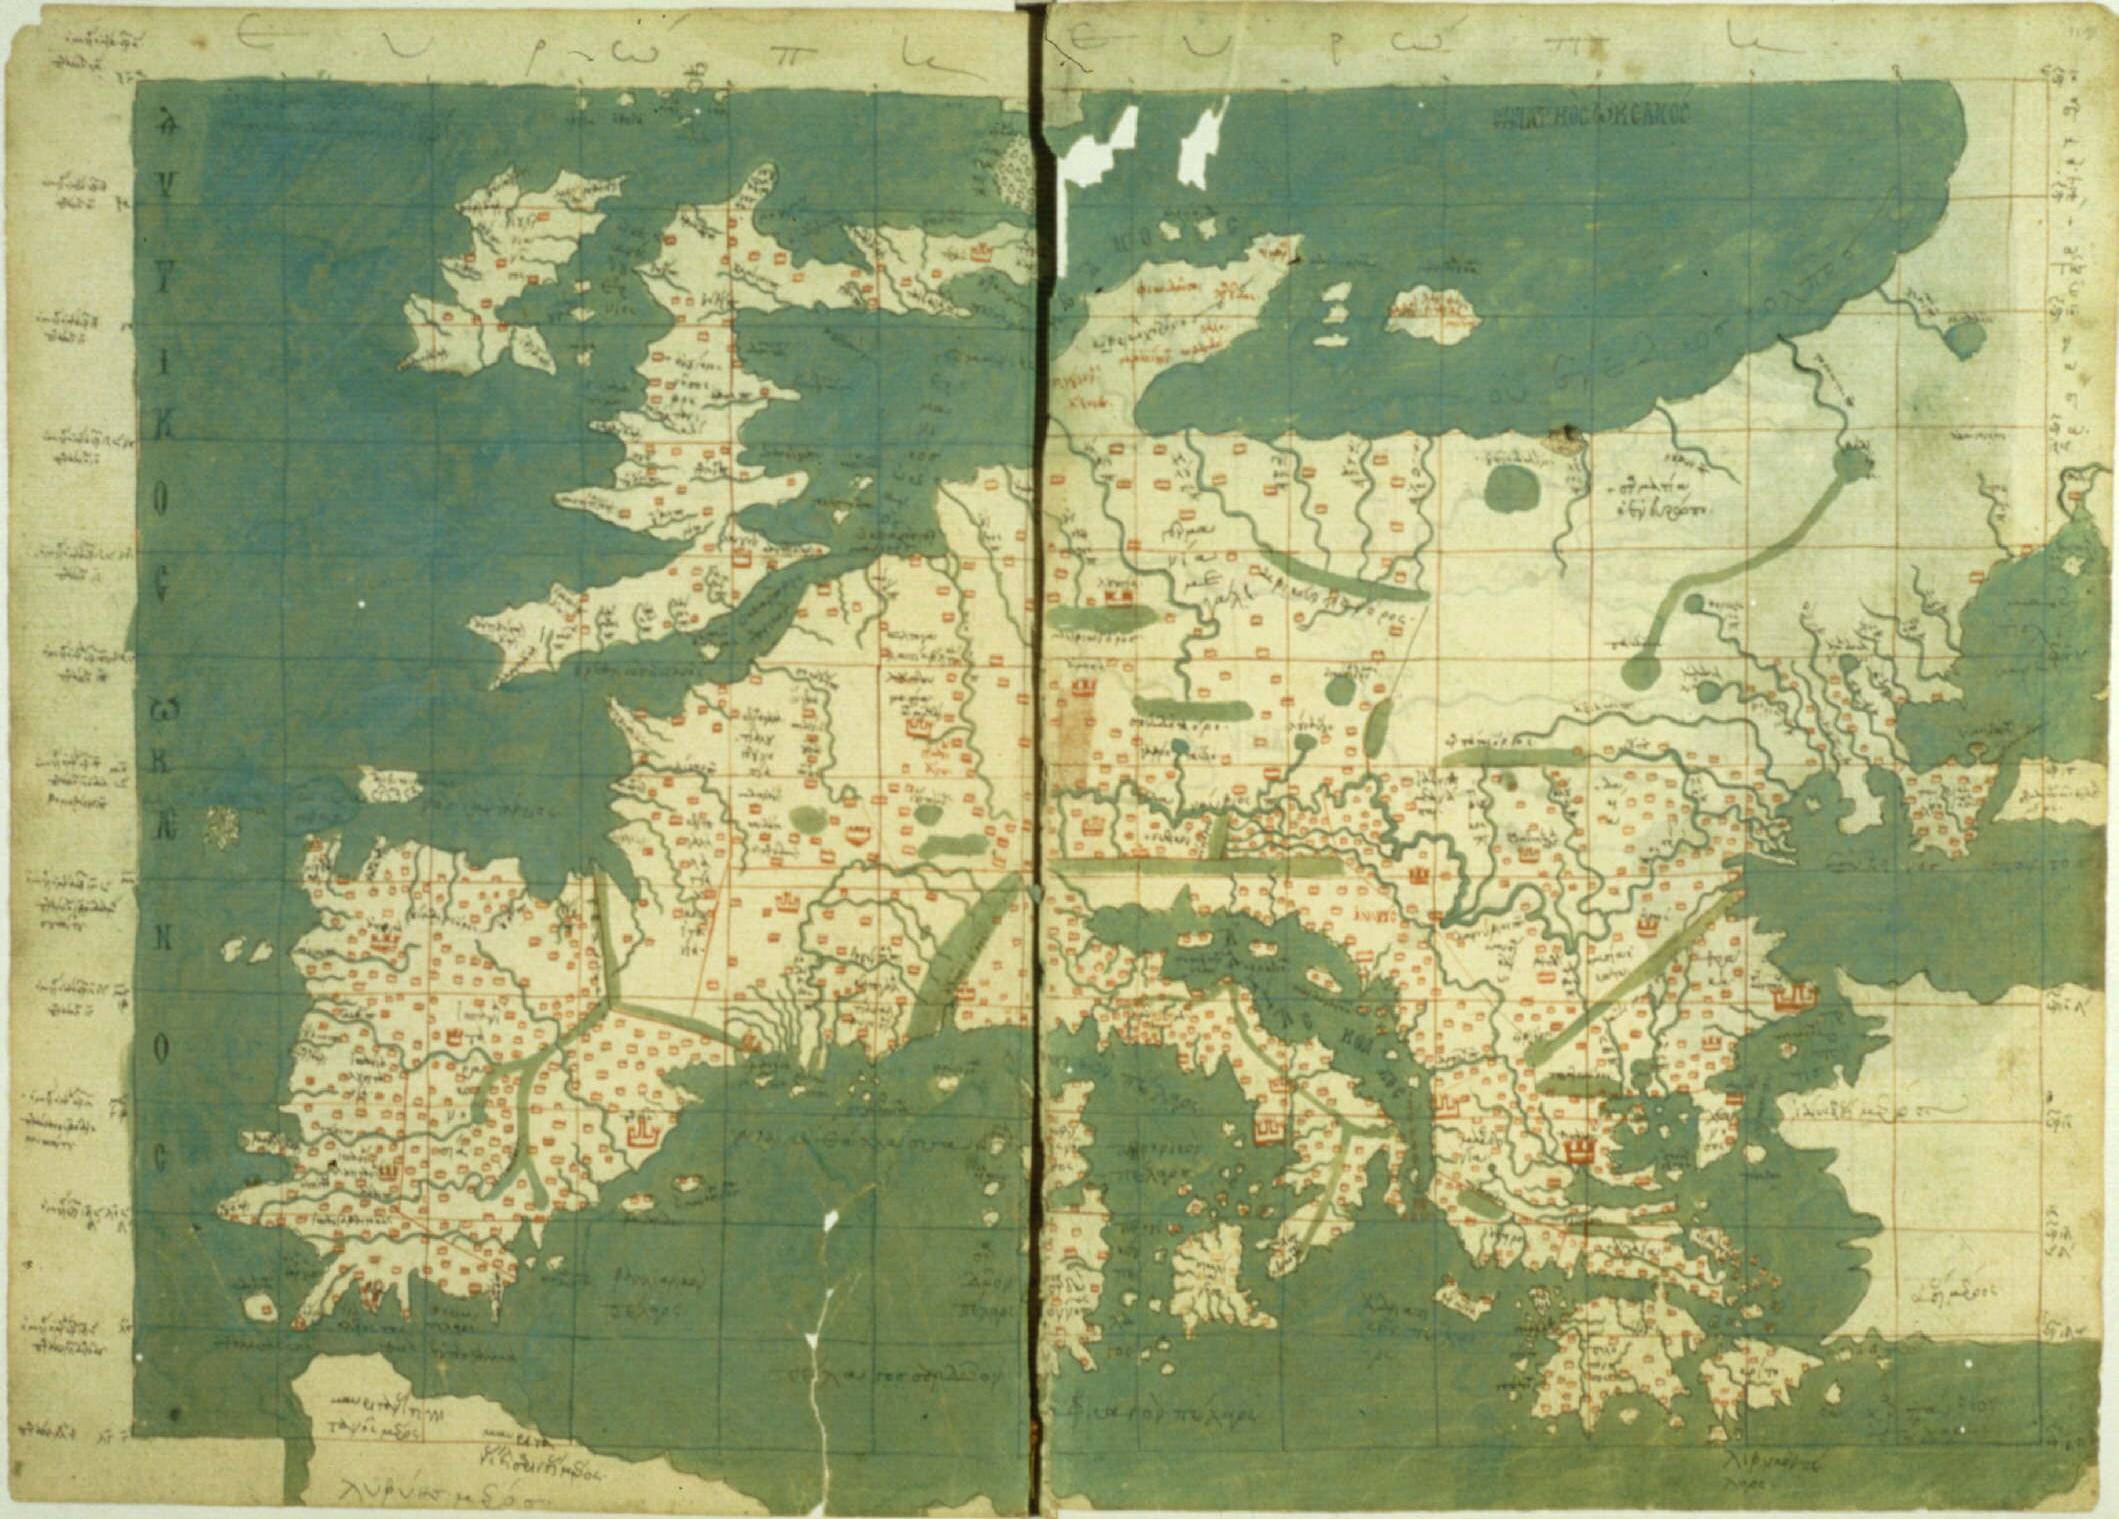 FilePtolemaic Europejpg Wikimedia Commons - Europe map 15th century